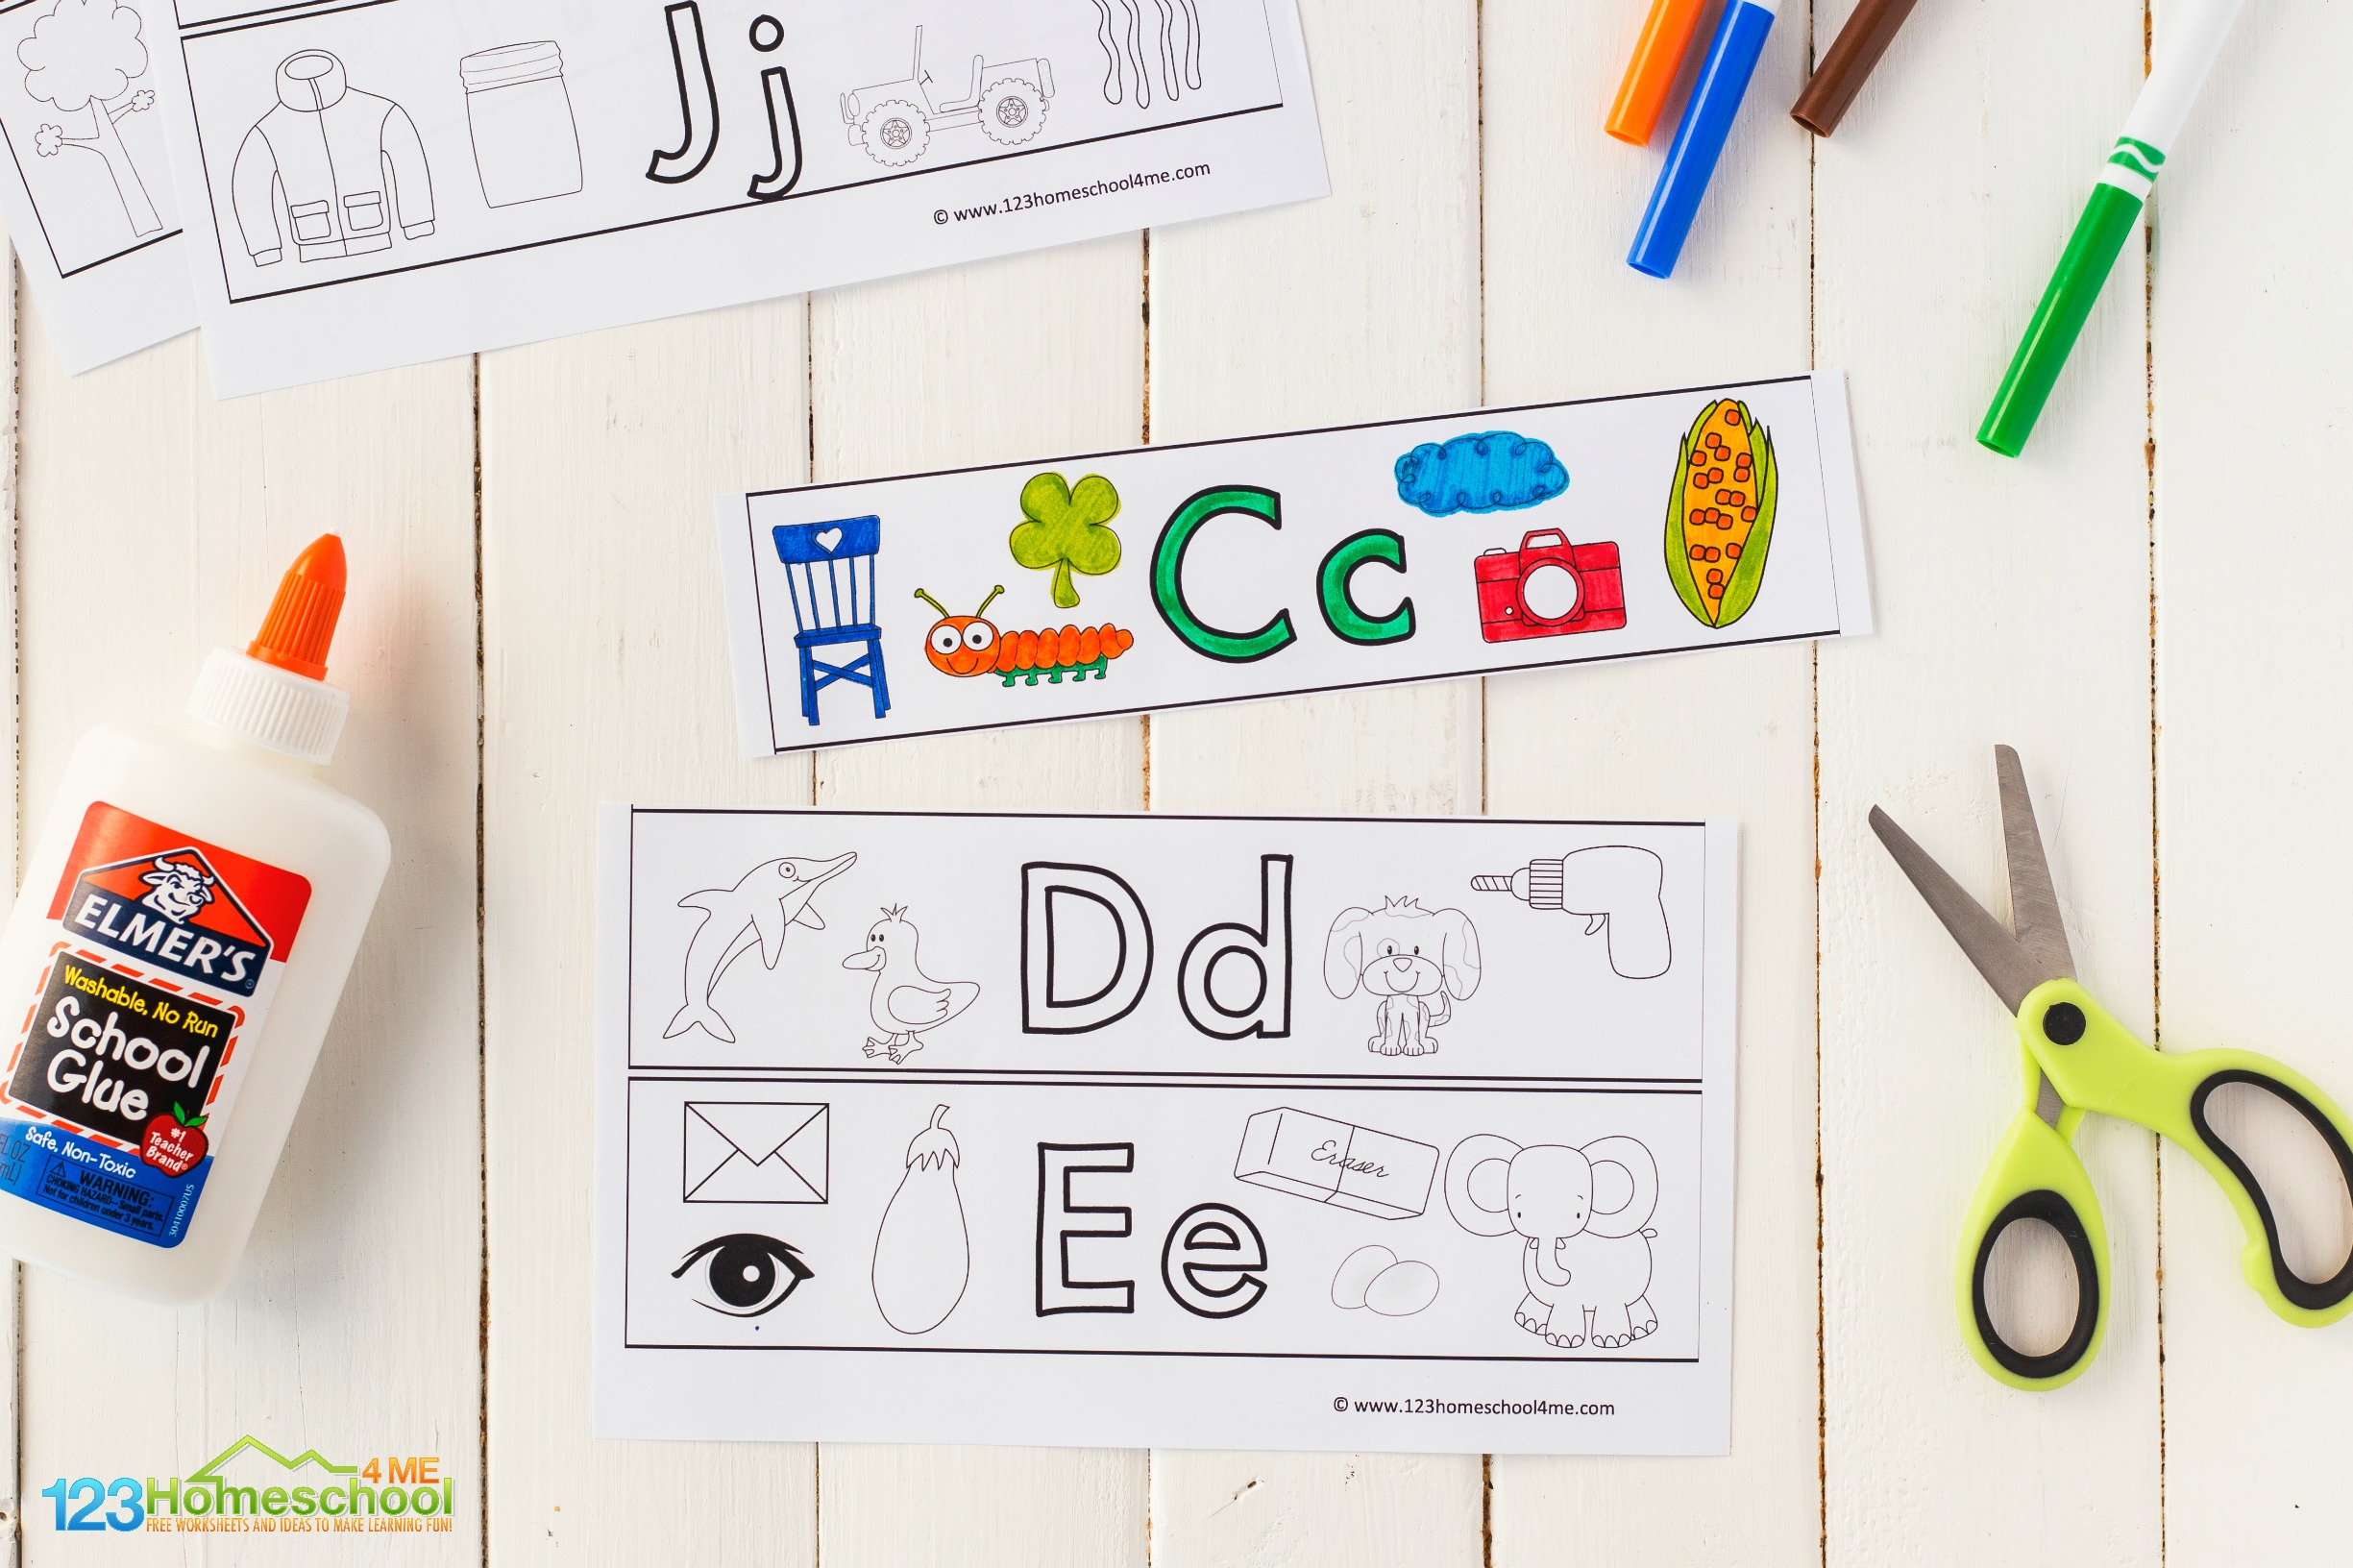 super cute alphabet printables to make letter bracelets or cuffs to learn the letters of the alphabet A to Z